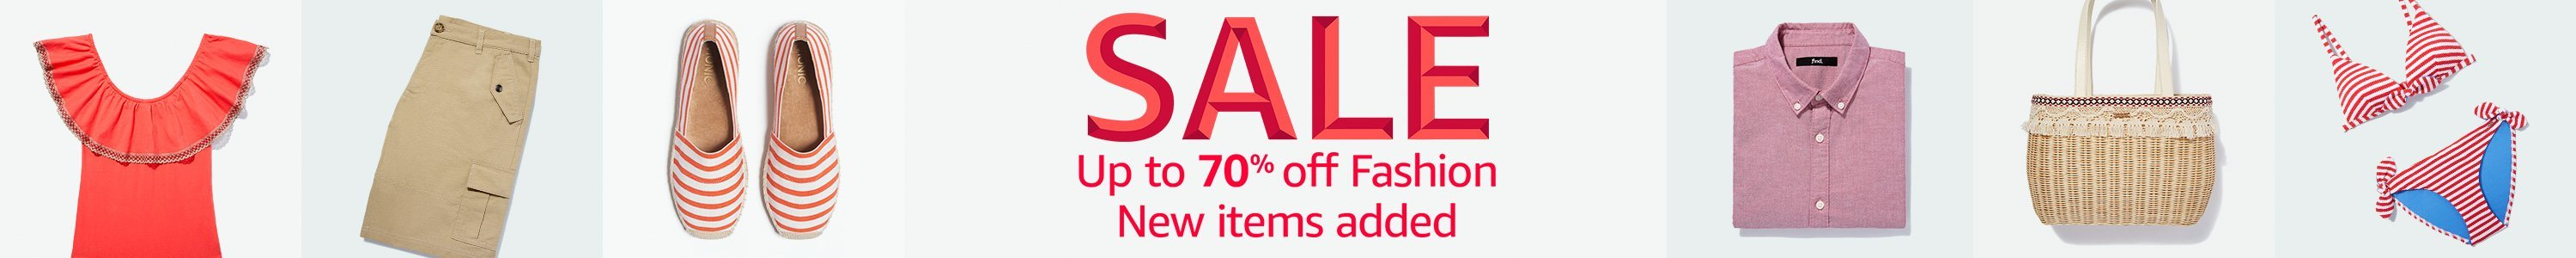 Upt to 70% off fashion